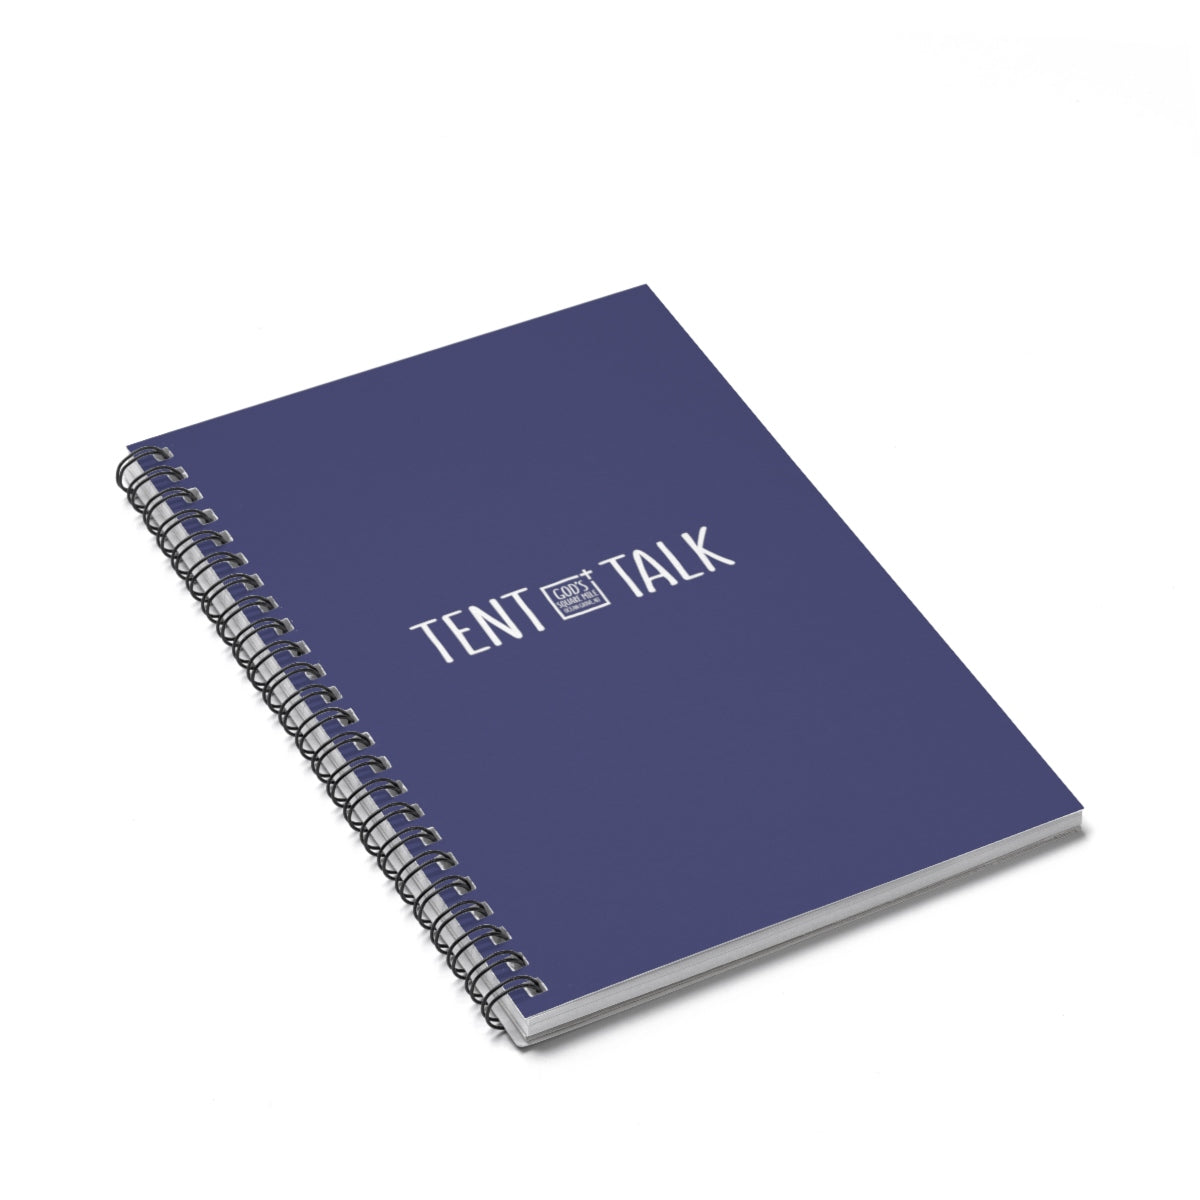 Tent Talk Spiral Notebook - Faded Denim Blue